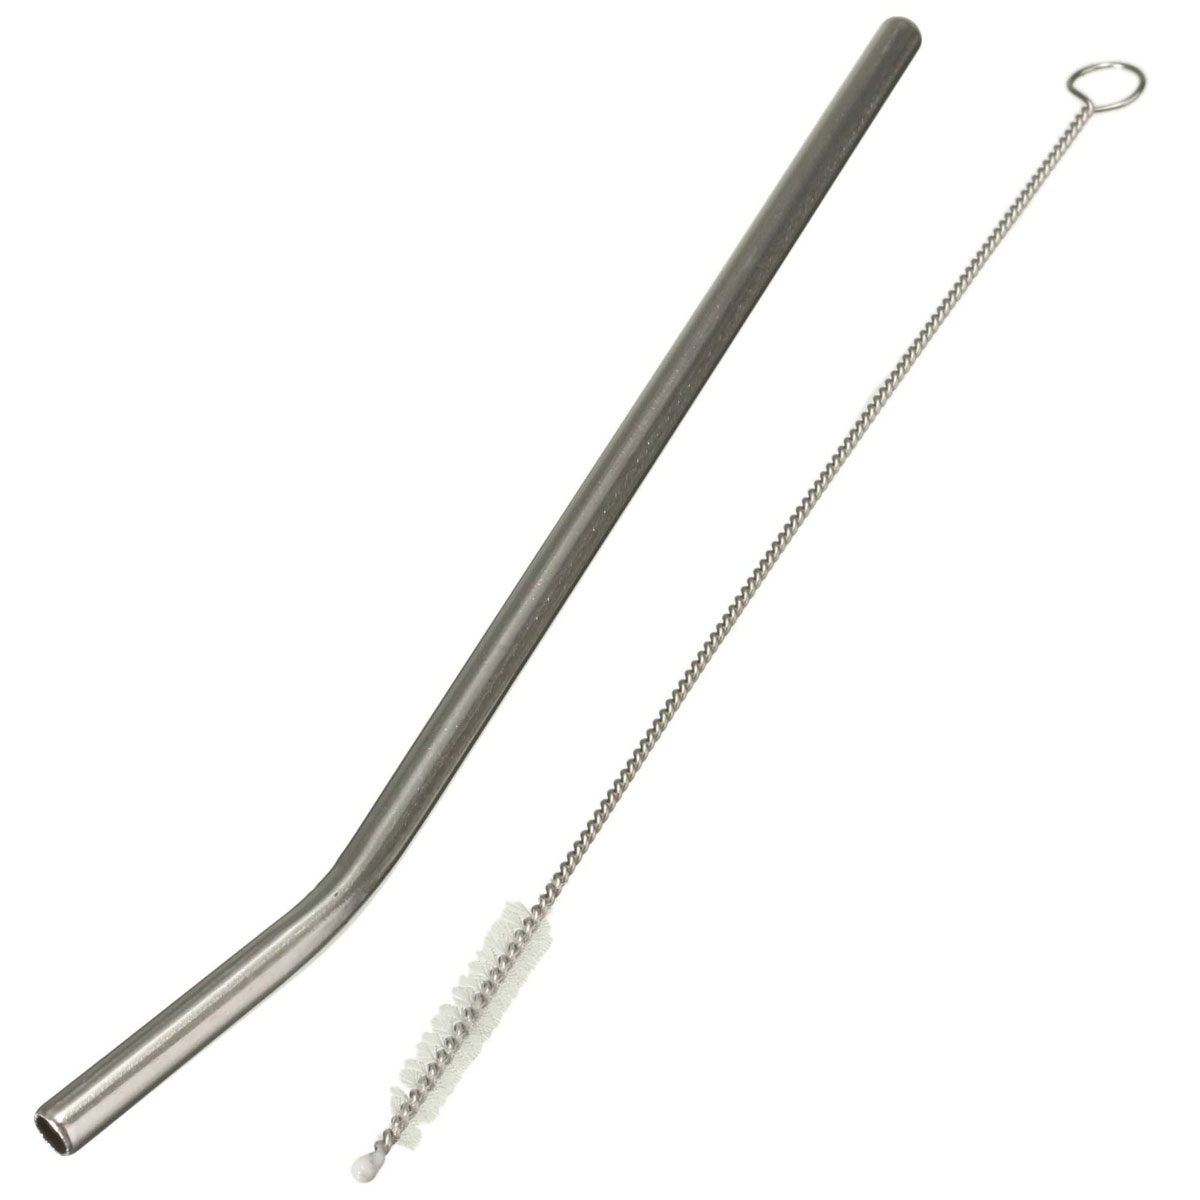 Reusable Stainless Steel Drinking Straws Reusable Metal Straw Or Cleaner Brush Party Tableware